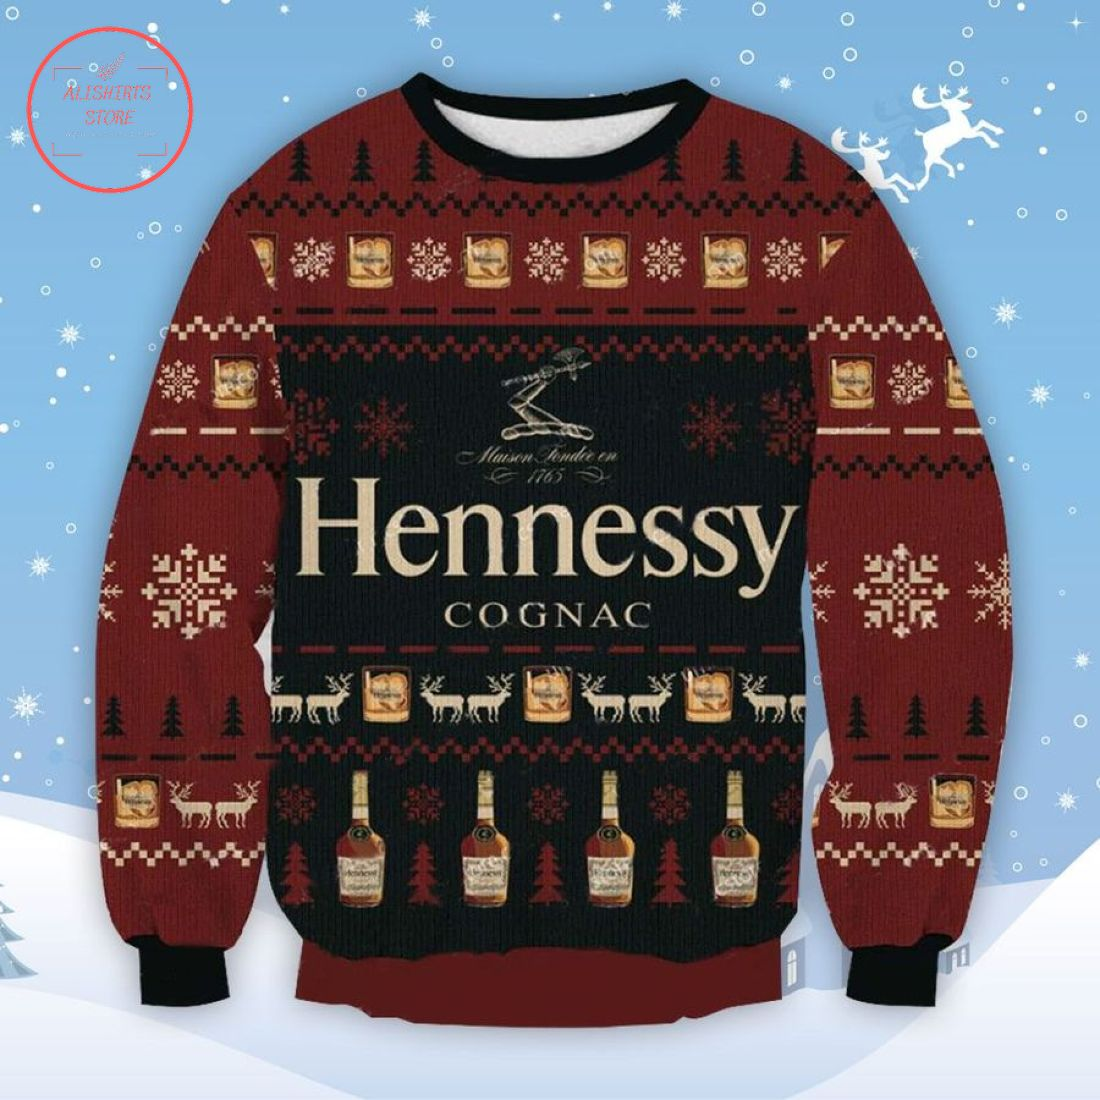 Hennessy Cognac Ugly Christmas Sweater